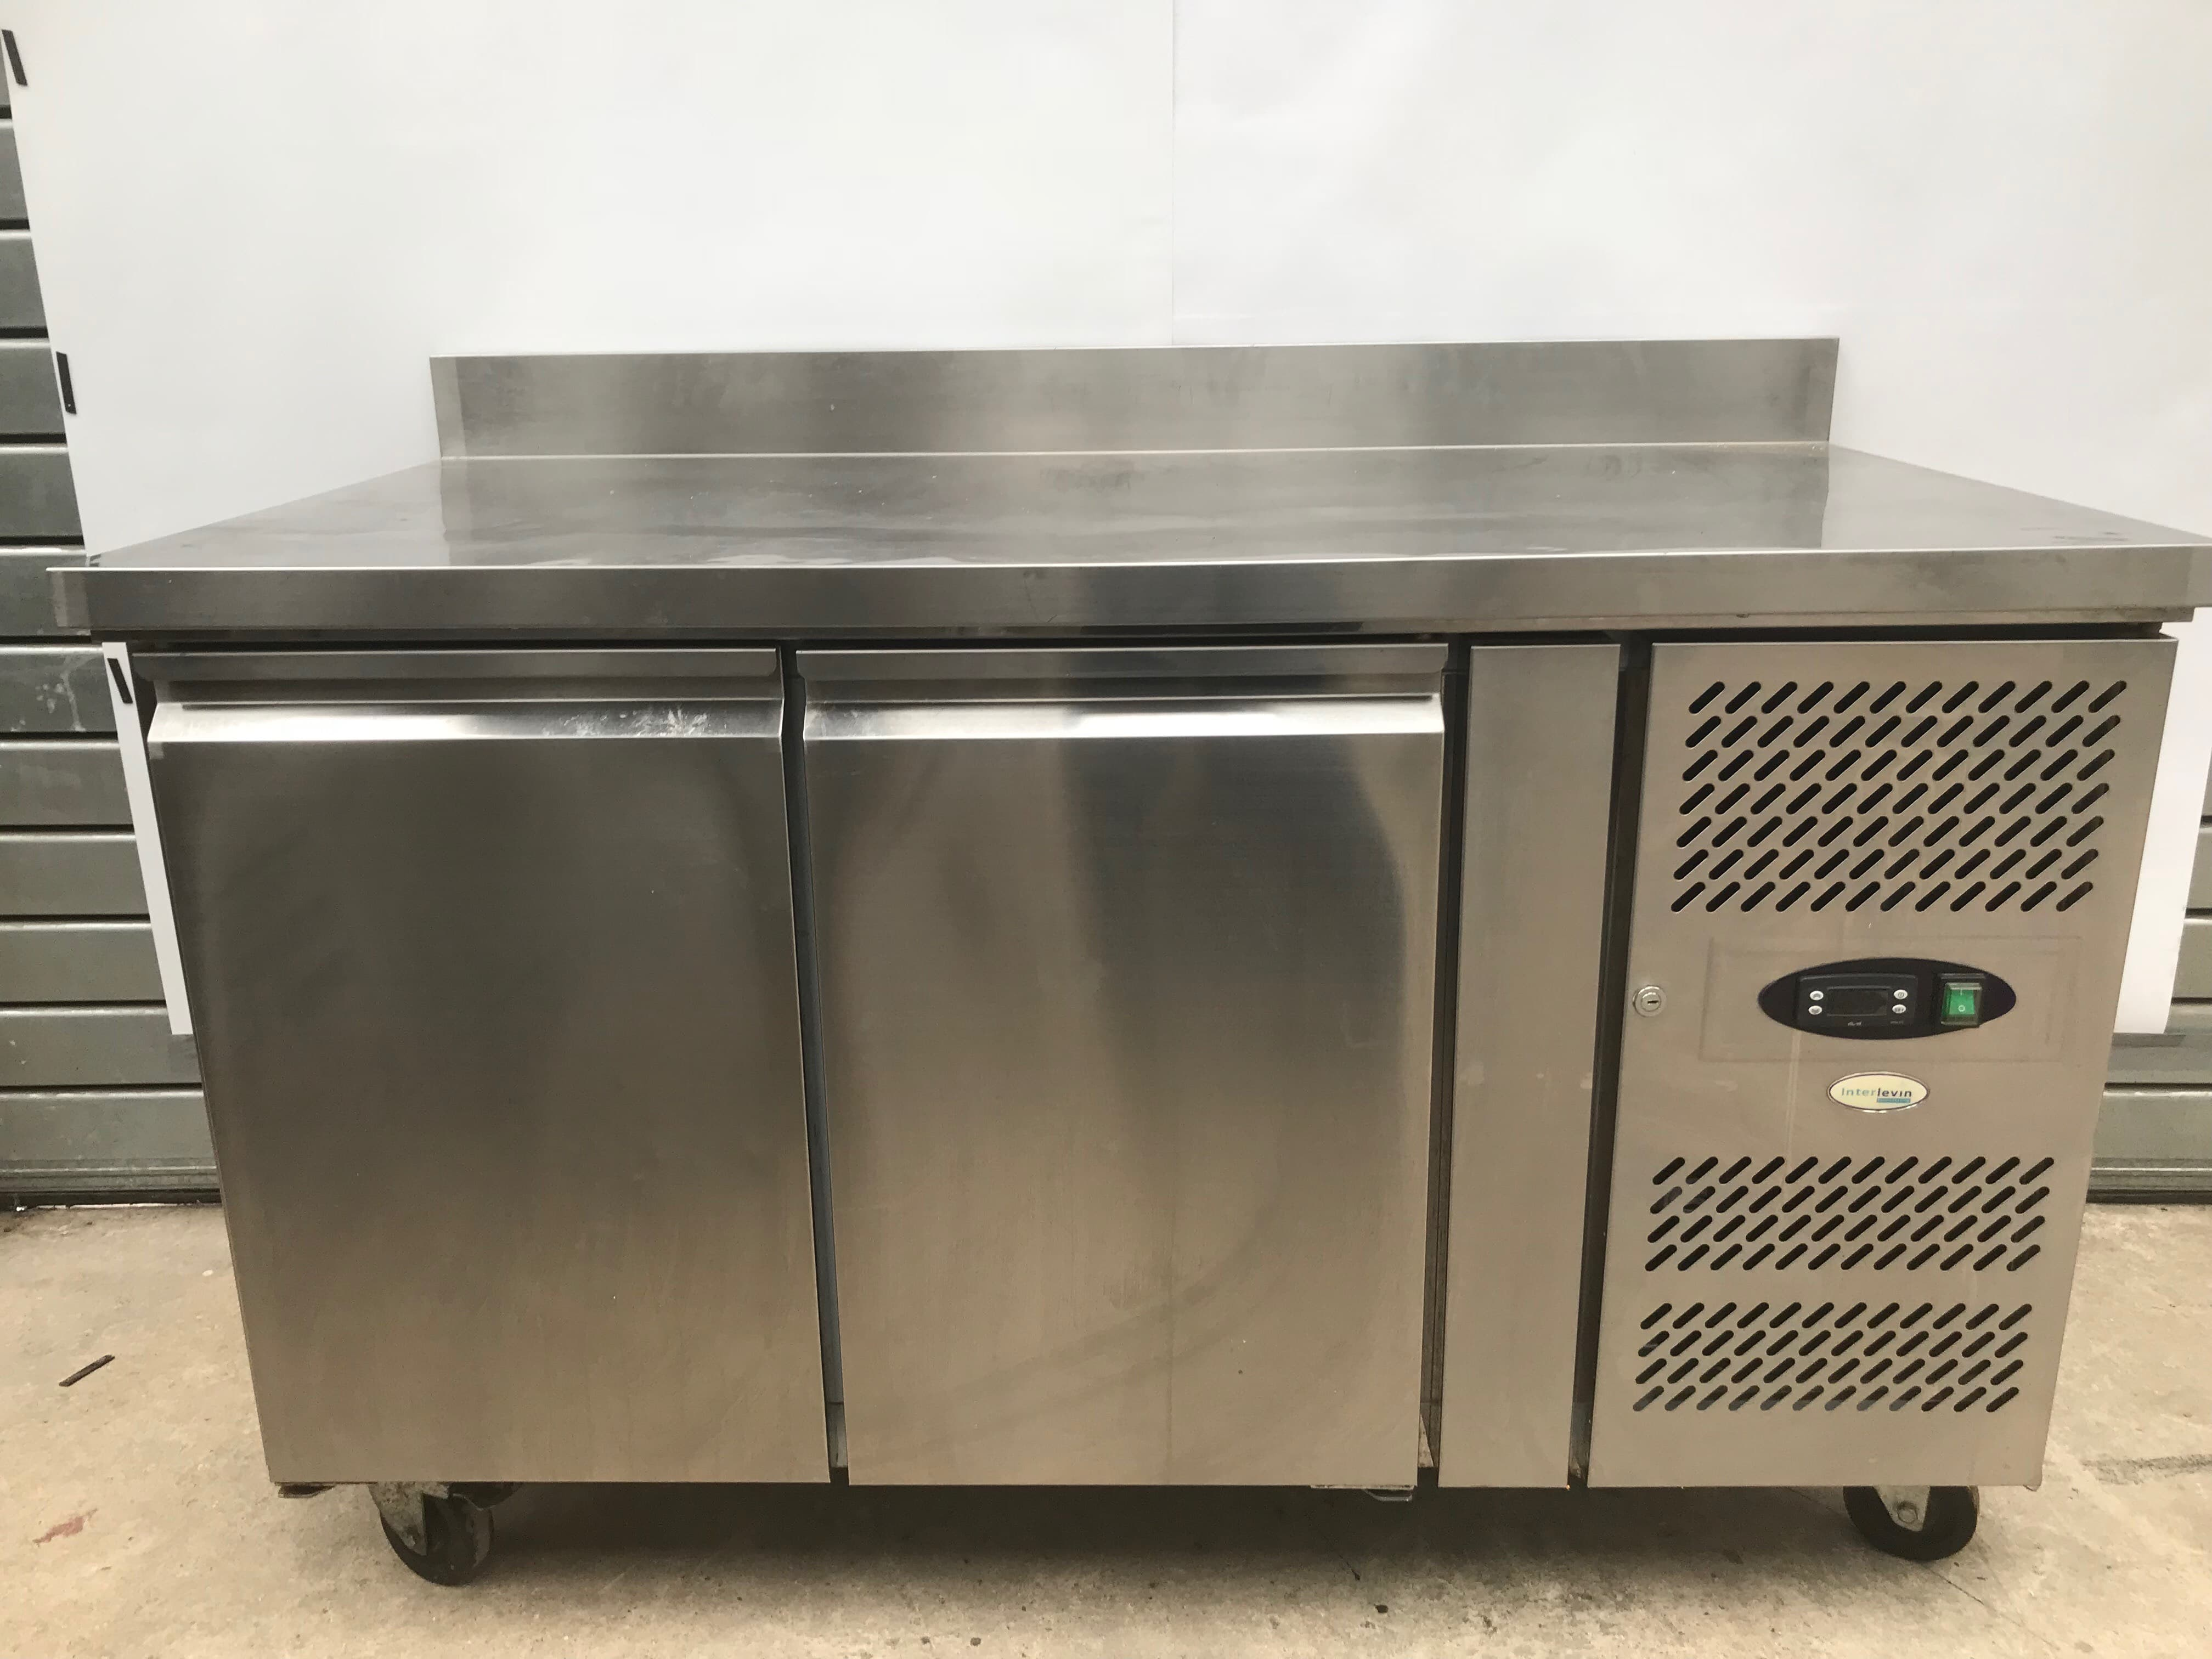 Interlevin 2 Door Refrigerated Counter